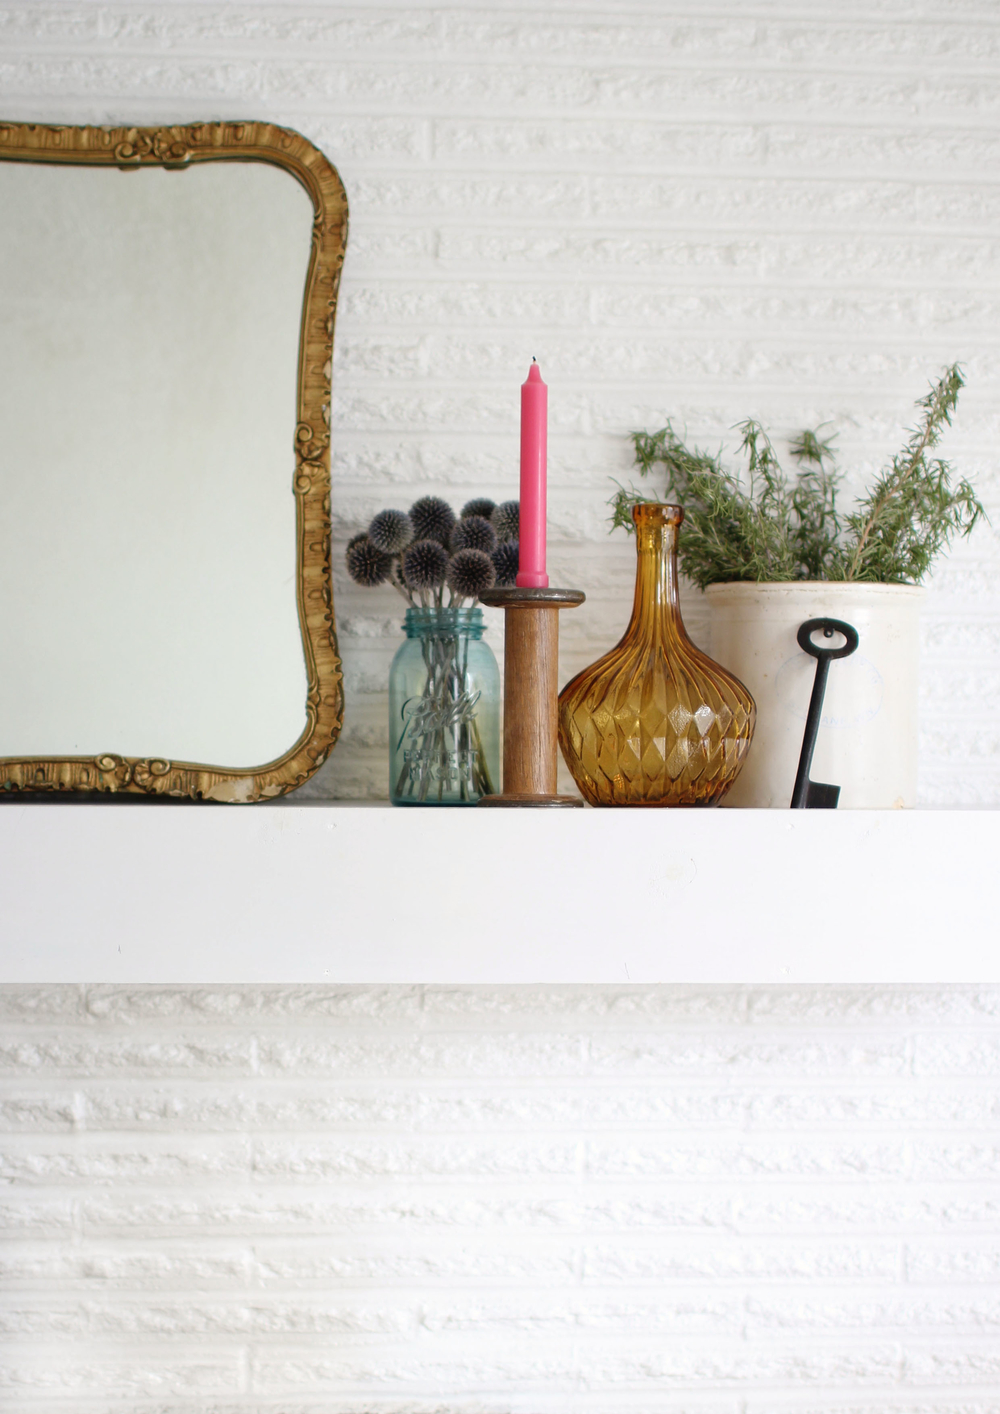 Image by Aileen Allen of At Home in Love blog from her Home Tour in Issue 8.